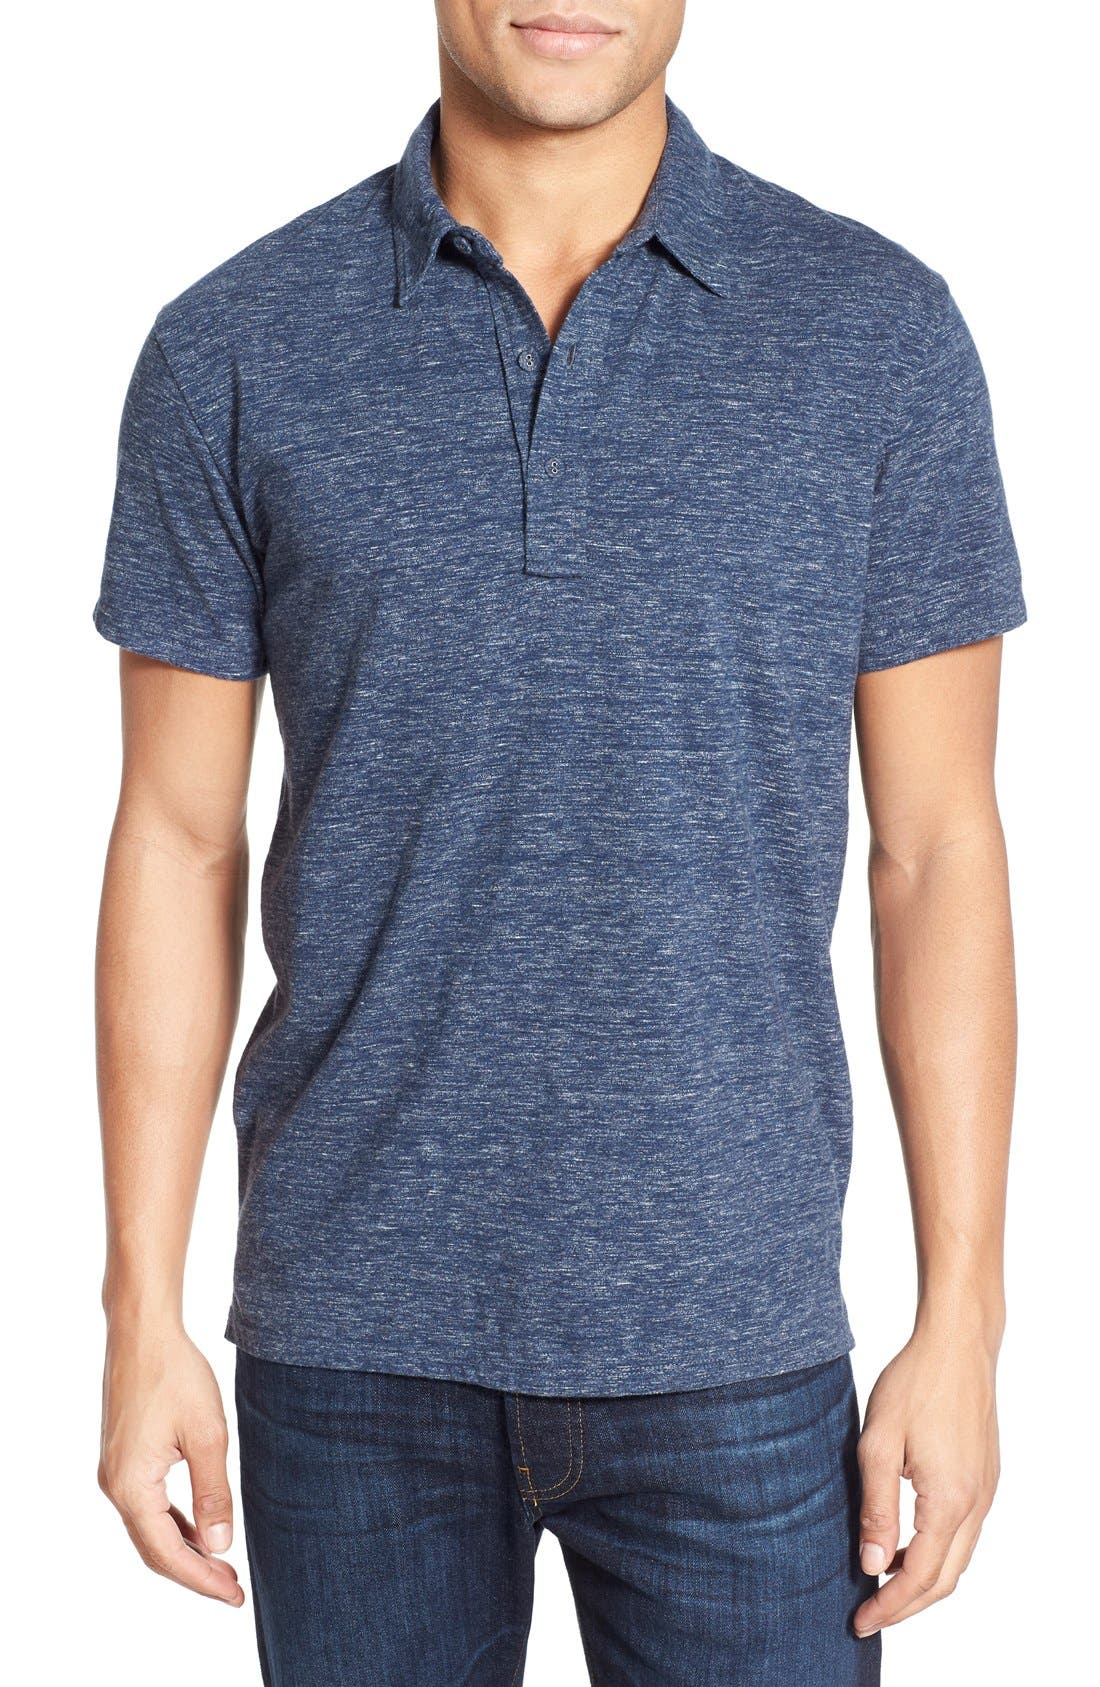 Grayers Nepped Slub Jersey Polo